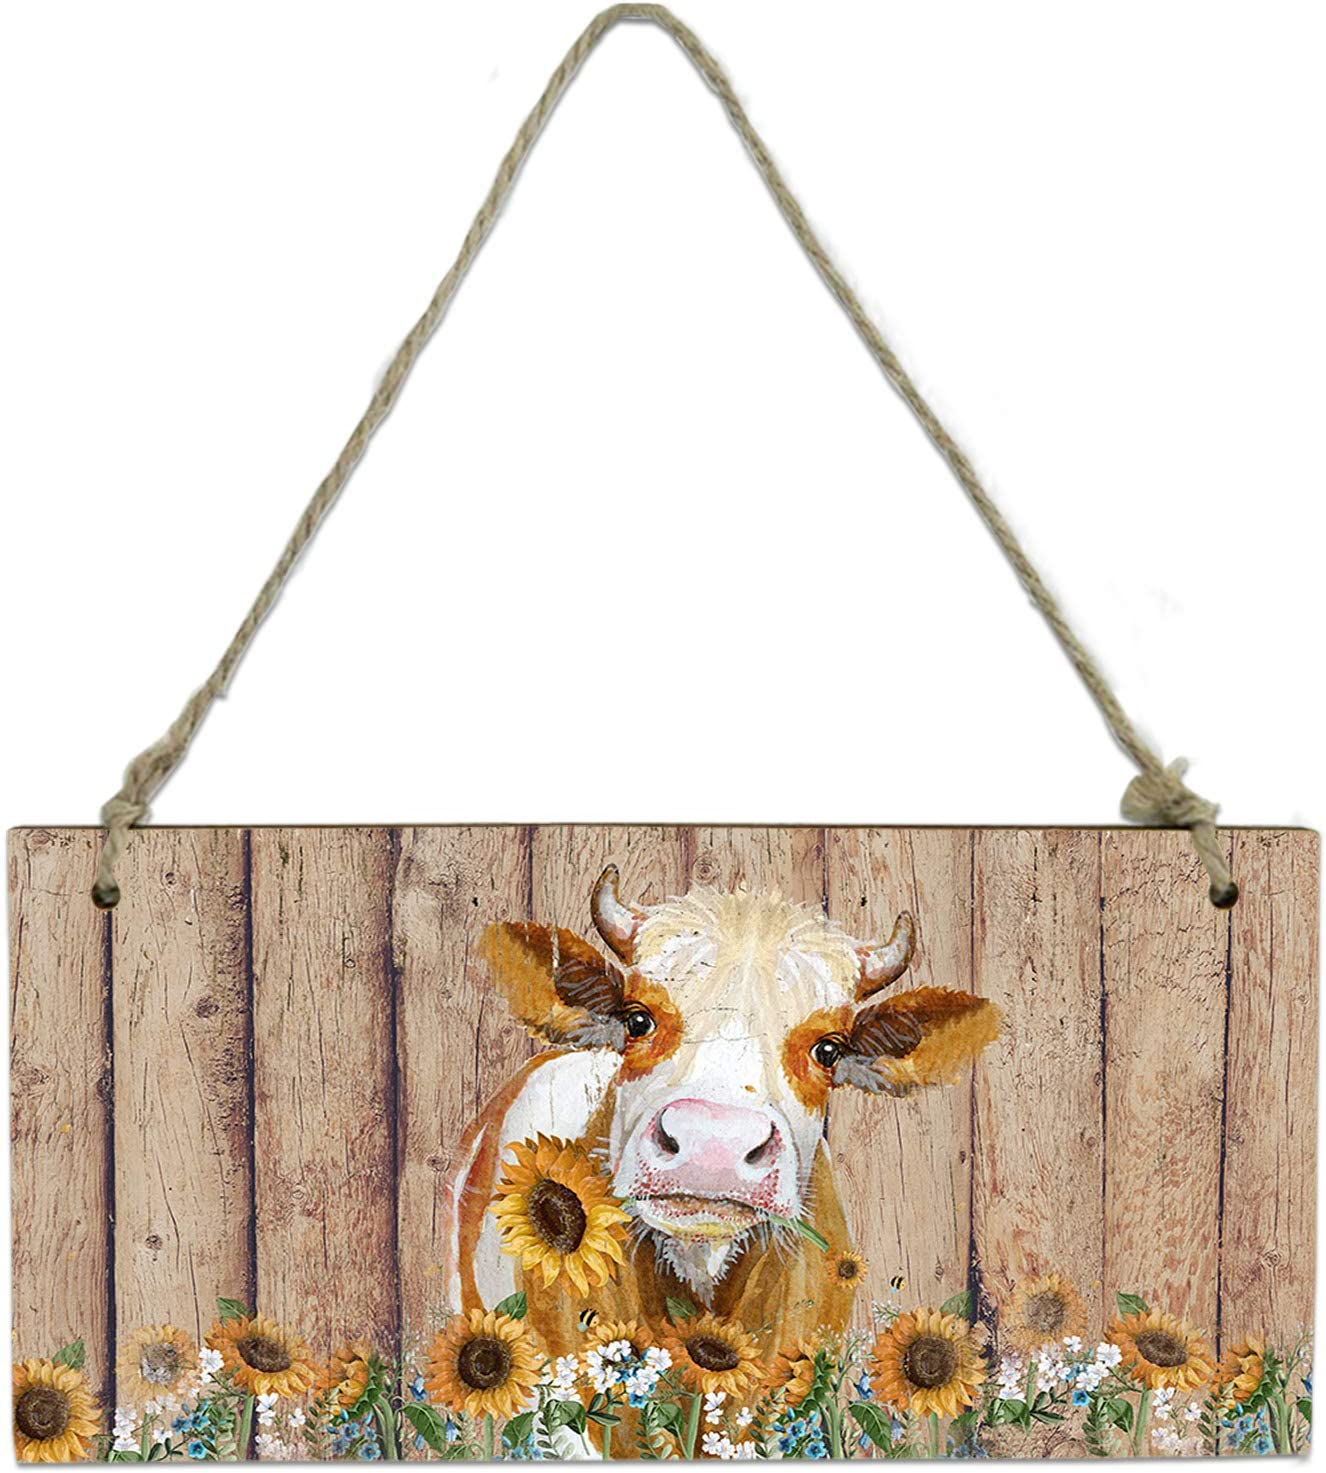 Wall Decor Sign Welcome Sign, Vintage Farm Cattle with Sunflower Board Plank Painting Wooden Hanging Sign Plaque with Rope for Porch,Front Door,Garden,8x4 Inch